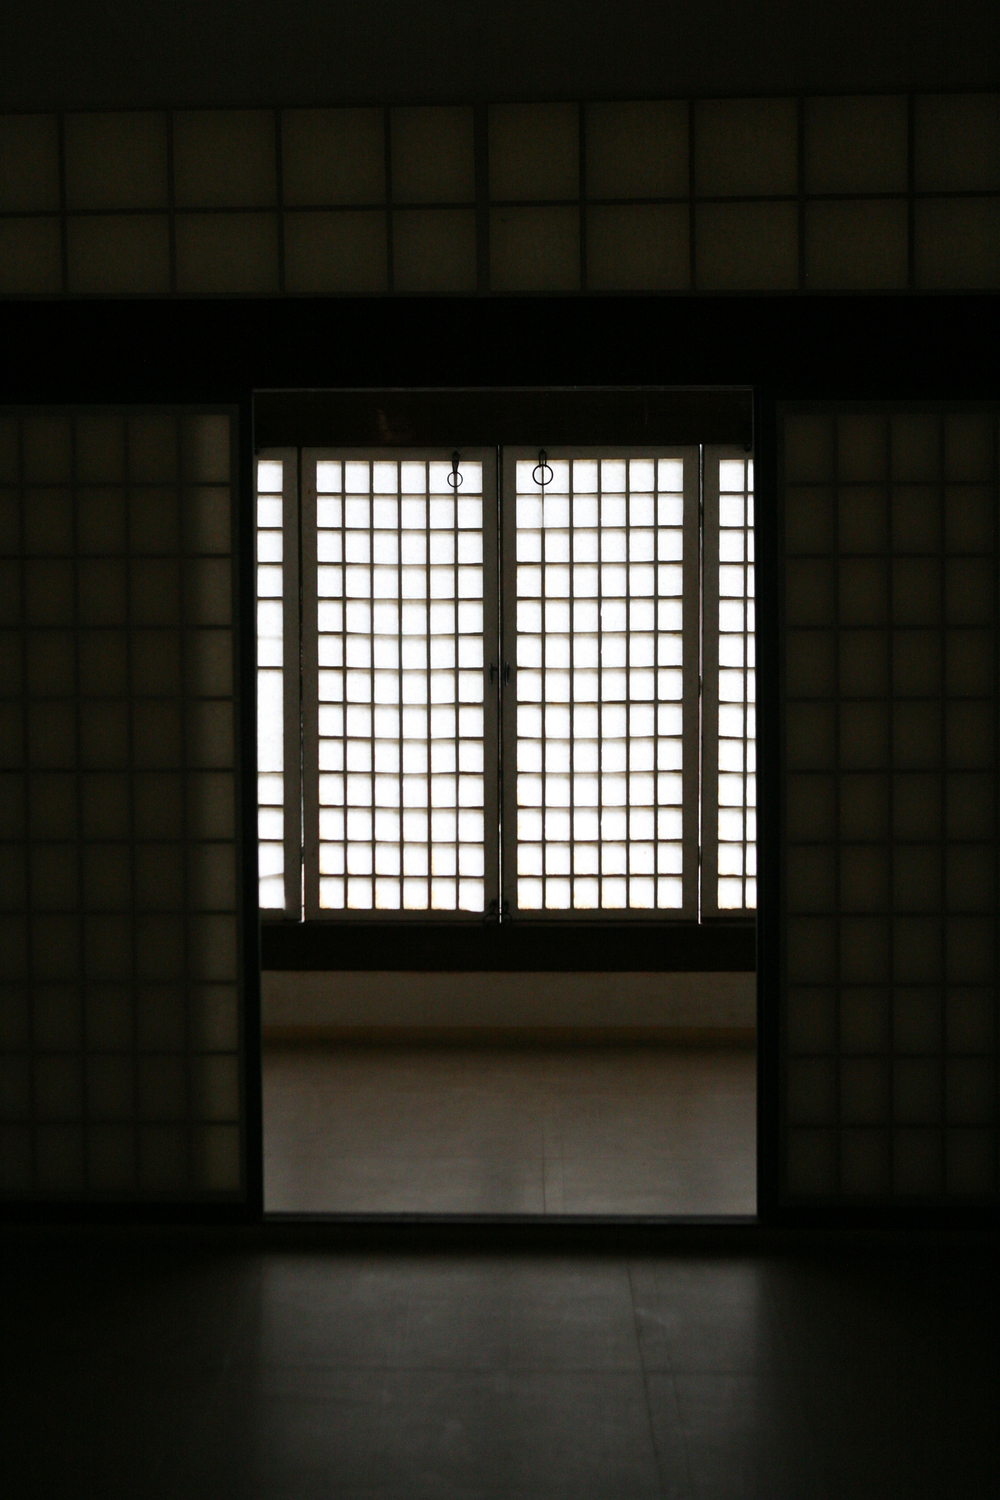 Someone's window _Korea-.jpg